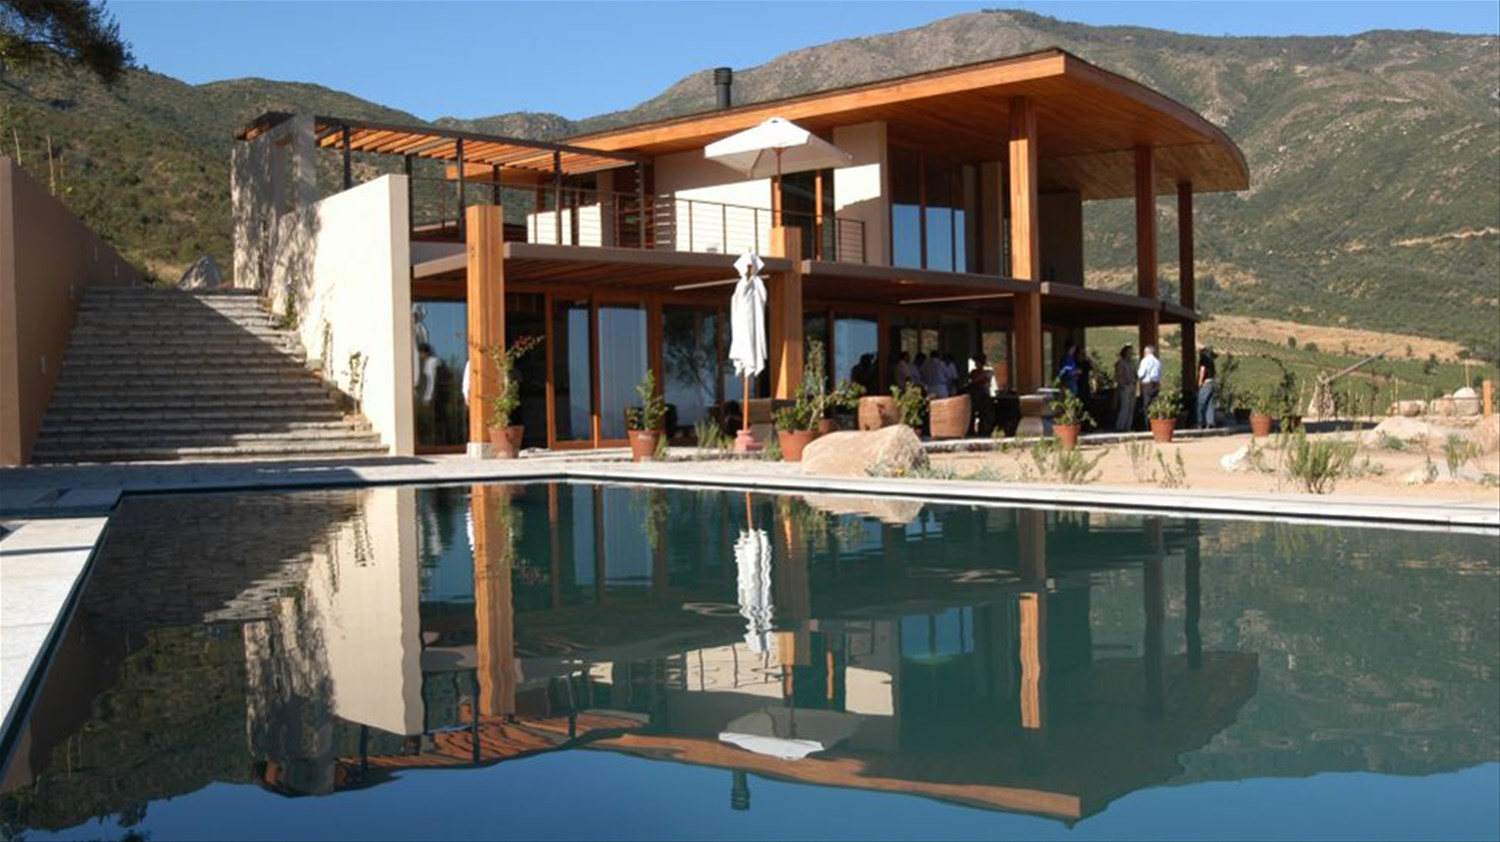 Clos apalta residence vineyards winelands chile for 123 adelaide terrace perth